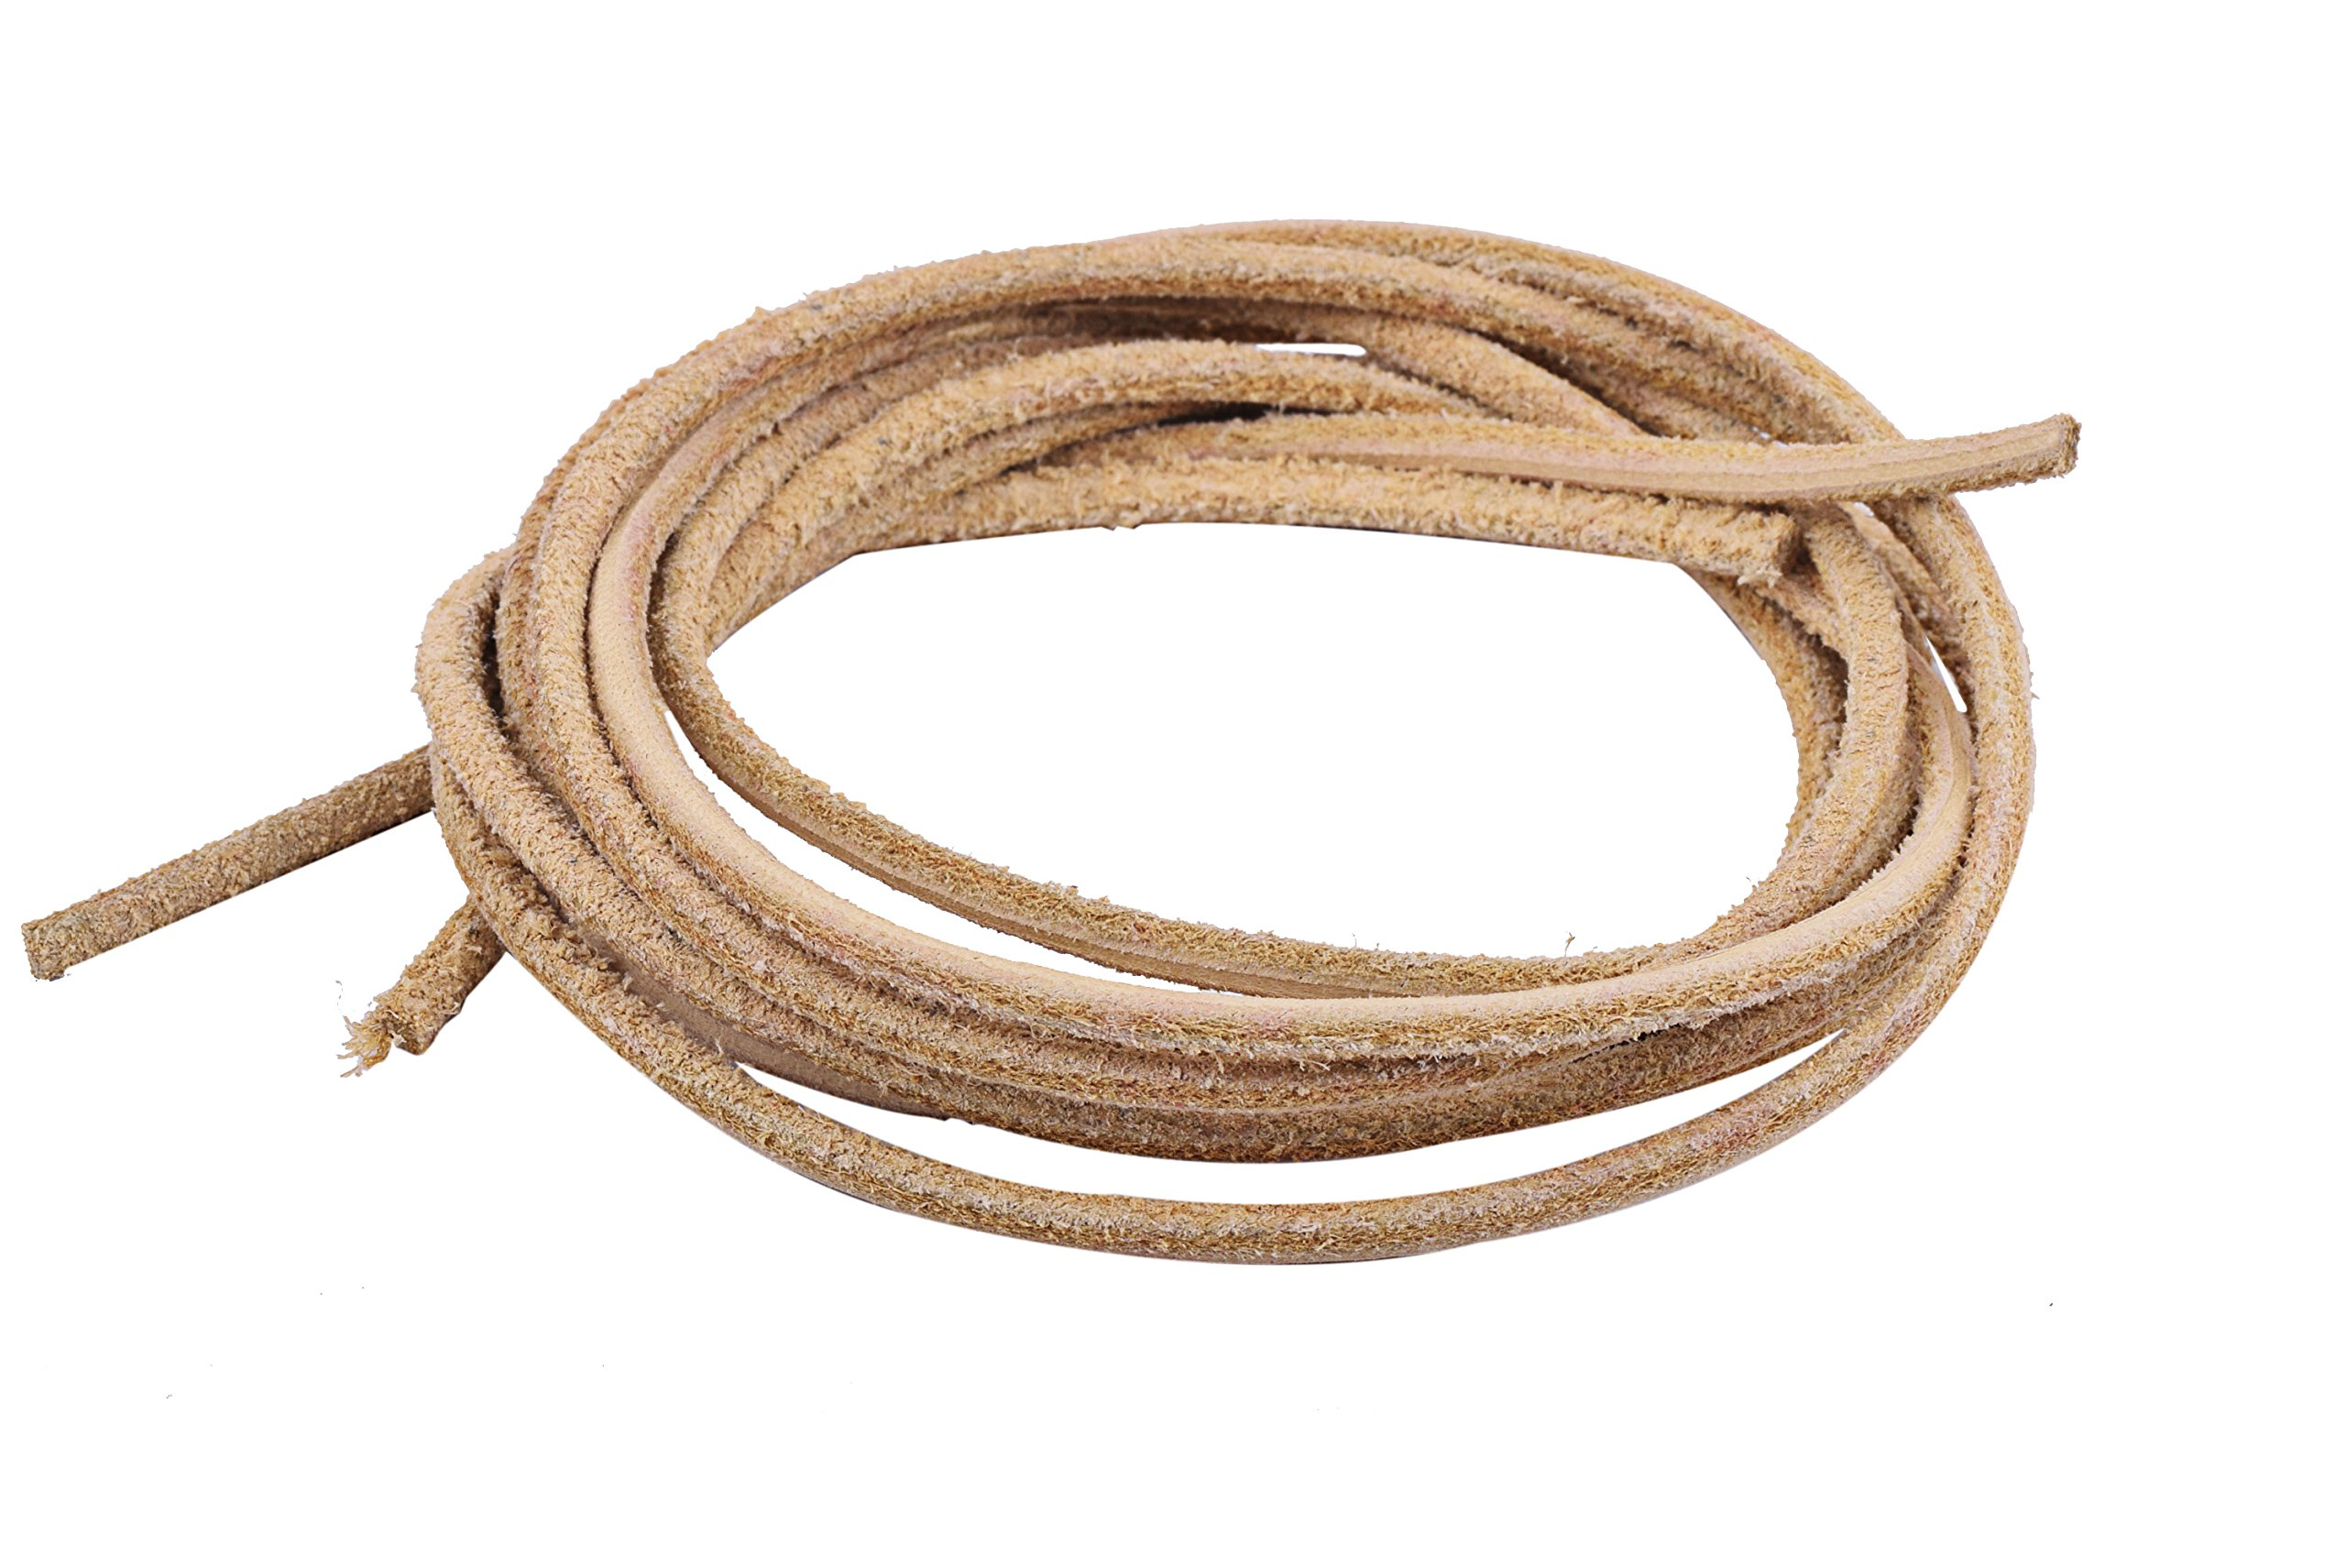 KONMAY 1 Pair Round Leather Boot Shoe Laces (72'', Natural)